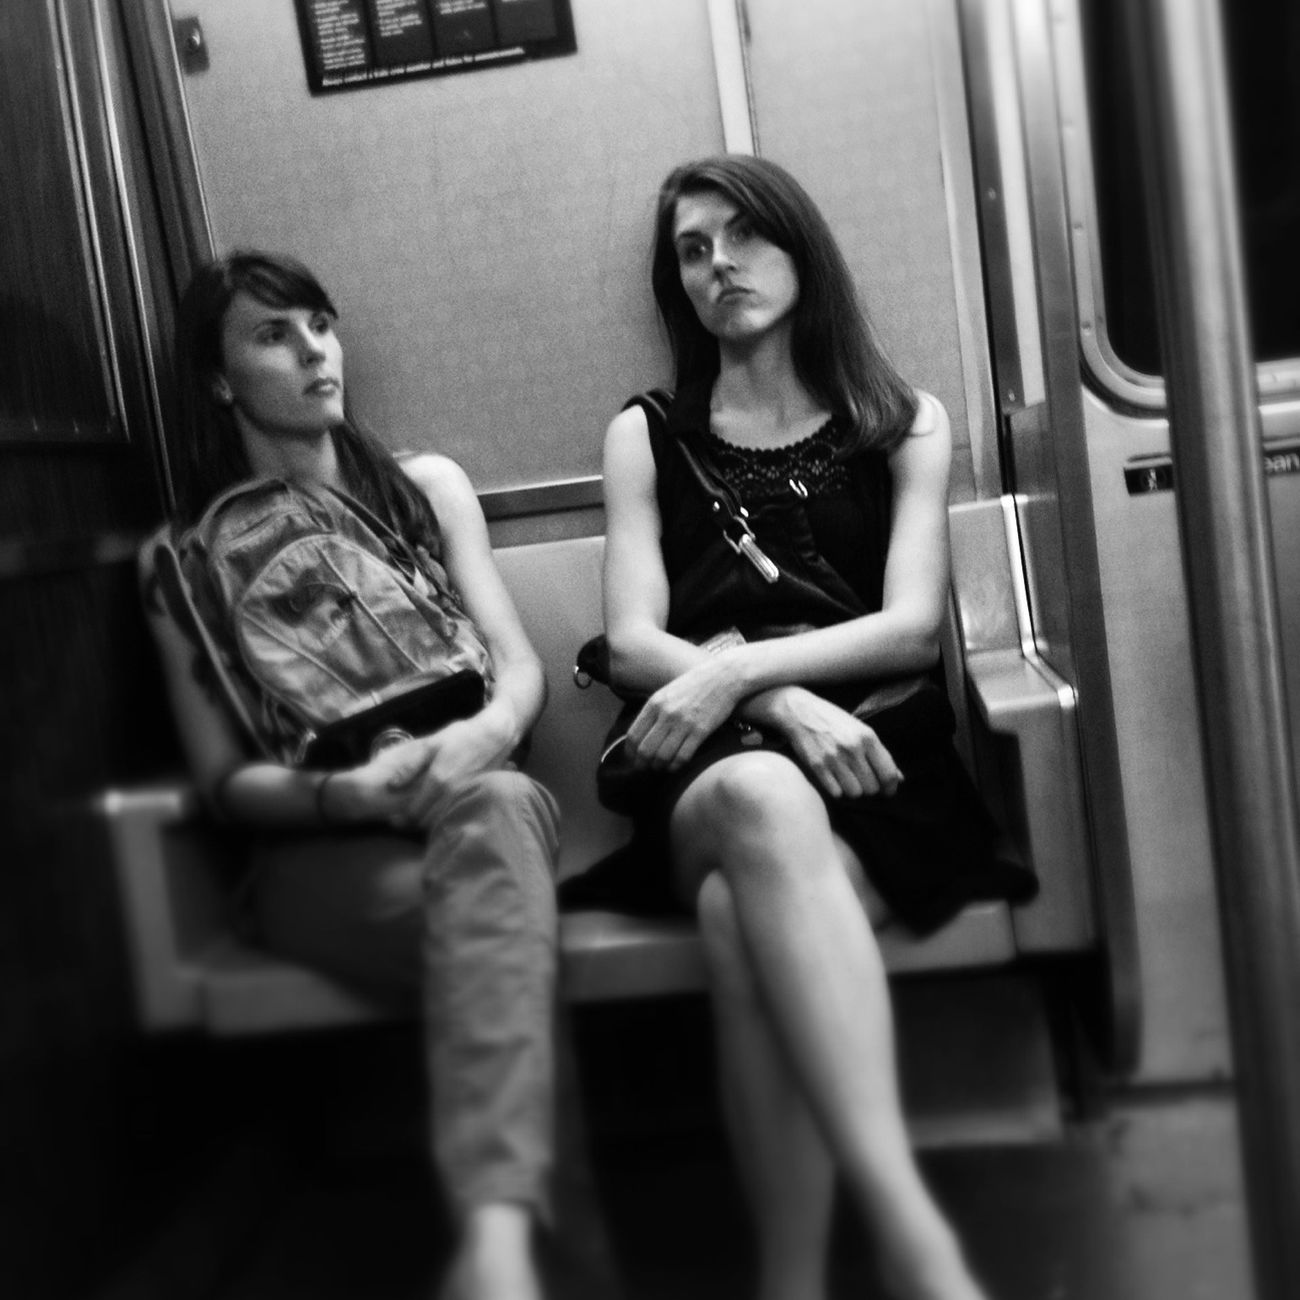 Bored Sisters Subway Streetphotography Streetphoto_bw